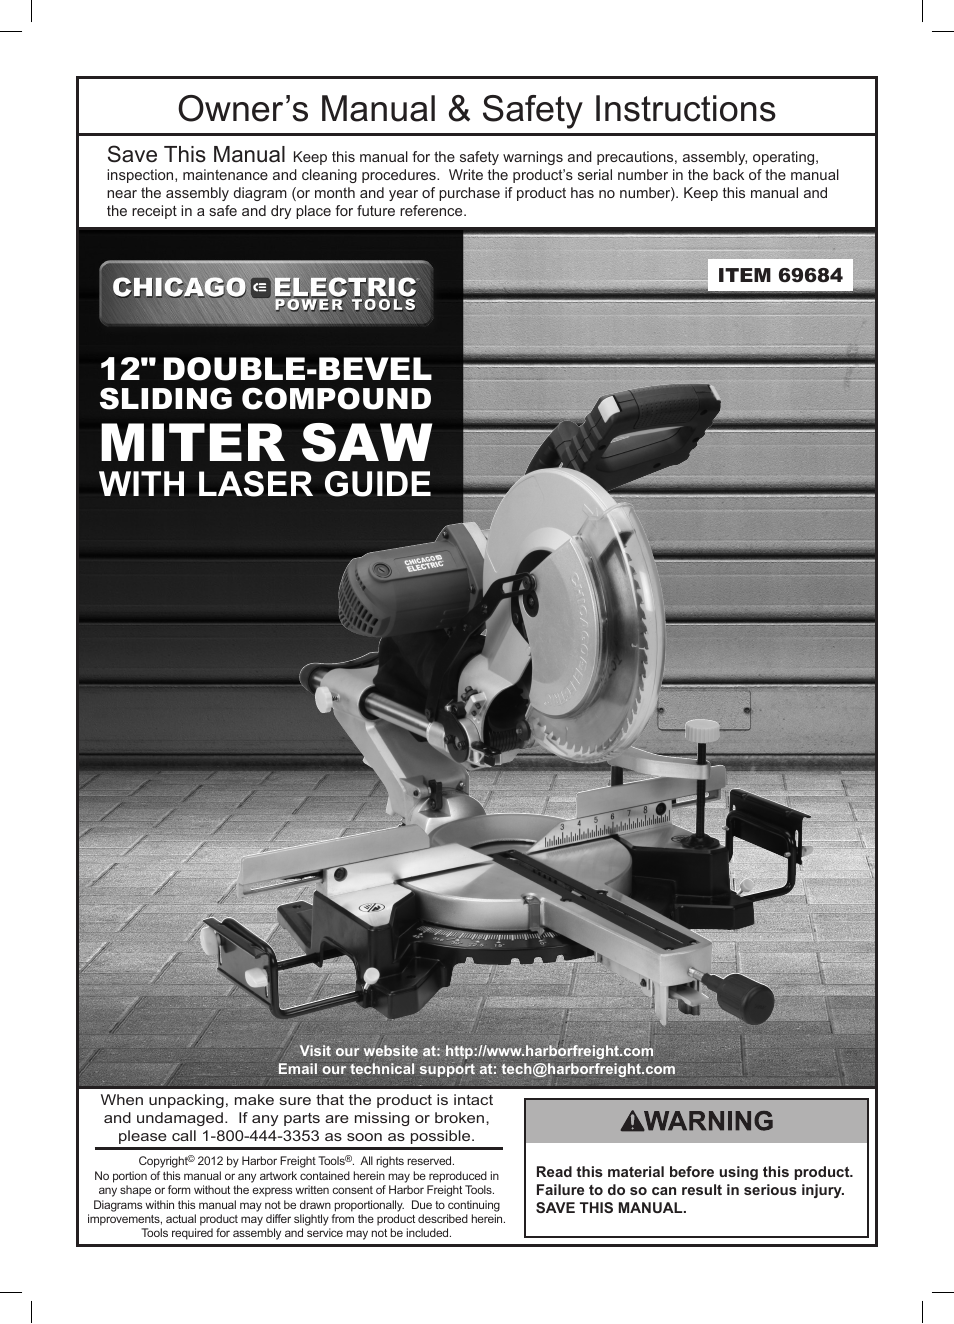 Chicago electric power tools 12 double bevel sliding compound miter chicago electric power tools 12 double bevel sliding compound miter saw with laser guide 69684 user manual 20 pages greentooth Choice Image